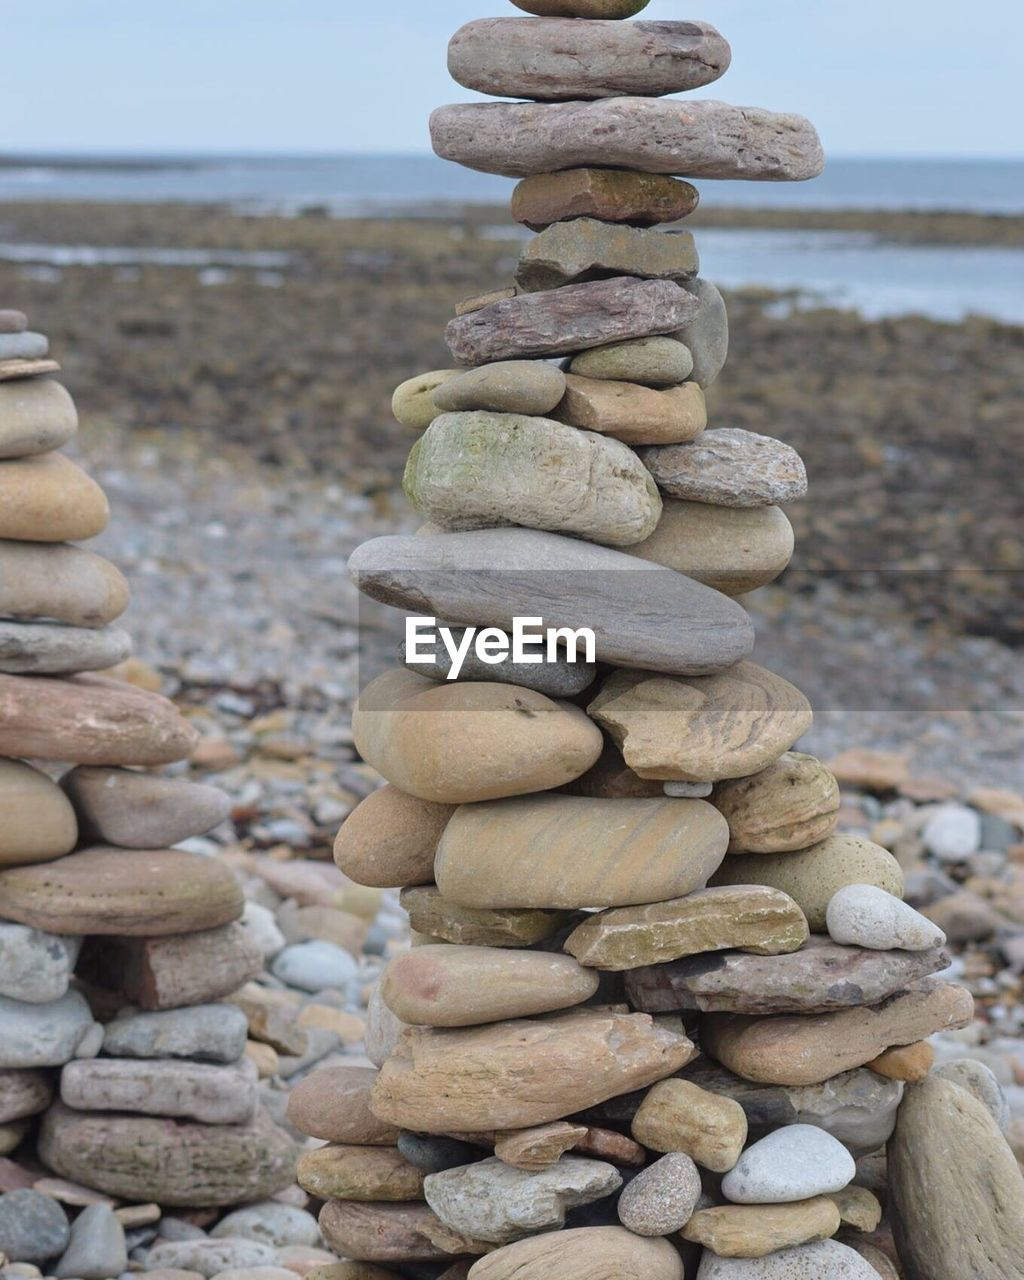 sea, stack, balance, pebble, water, rock - object, day, large group of objects, outdoors, no people, focus on foreground, beach, nature, horizon over water, close-up, beauty in nature, sky, pebble beach